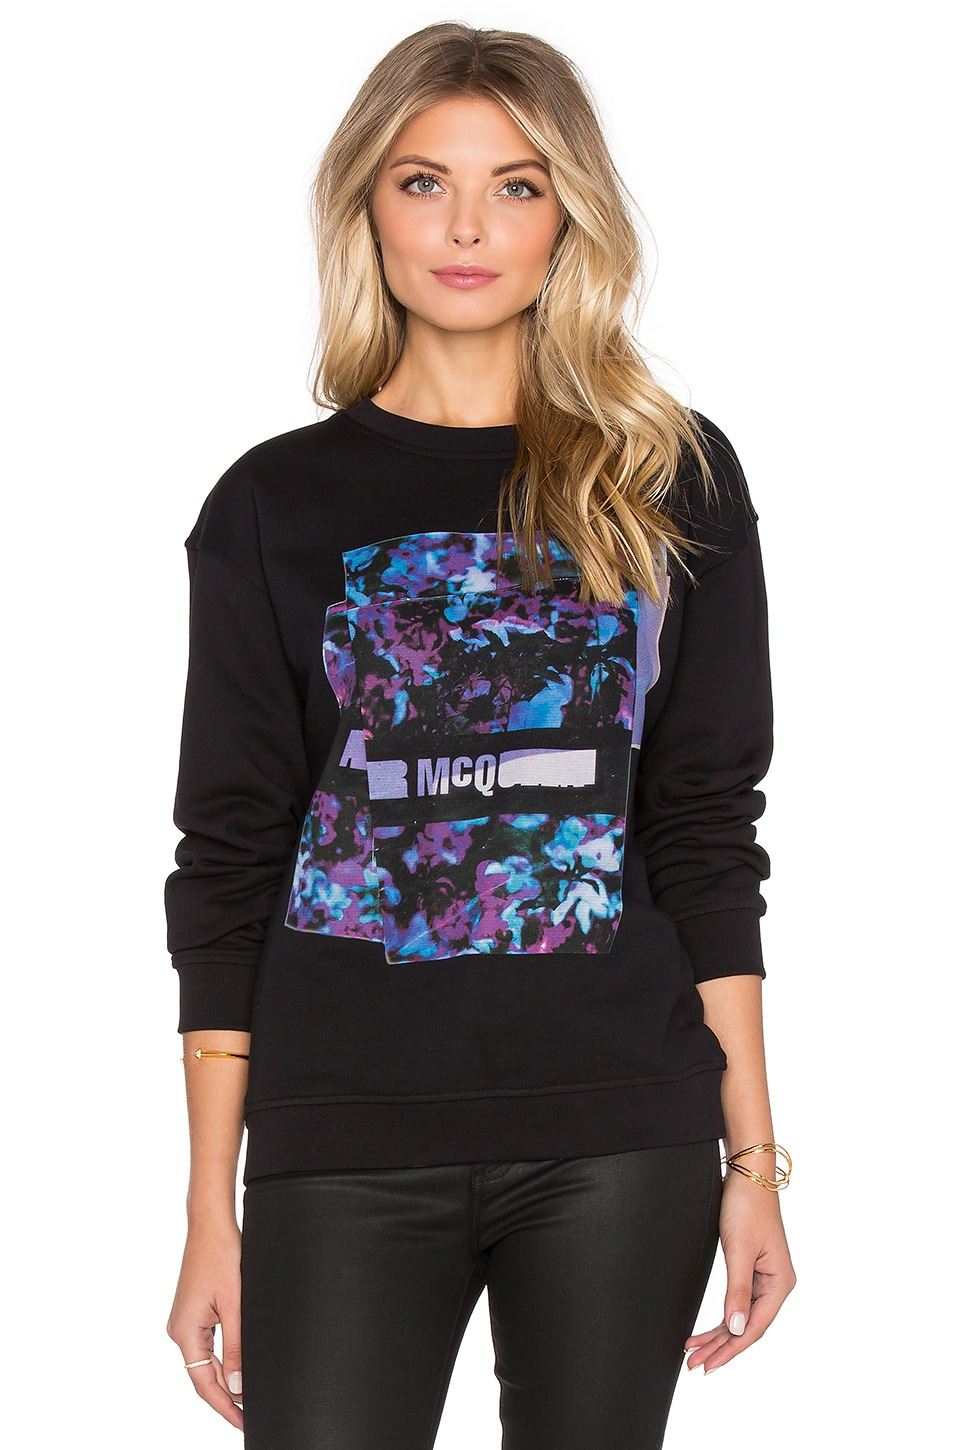 McQ Alexander McQueen Classic Sweatshirt in Darkest Black